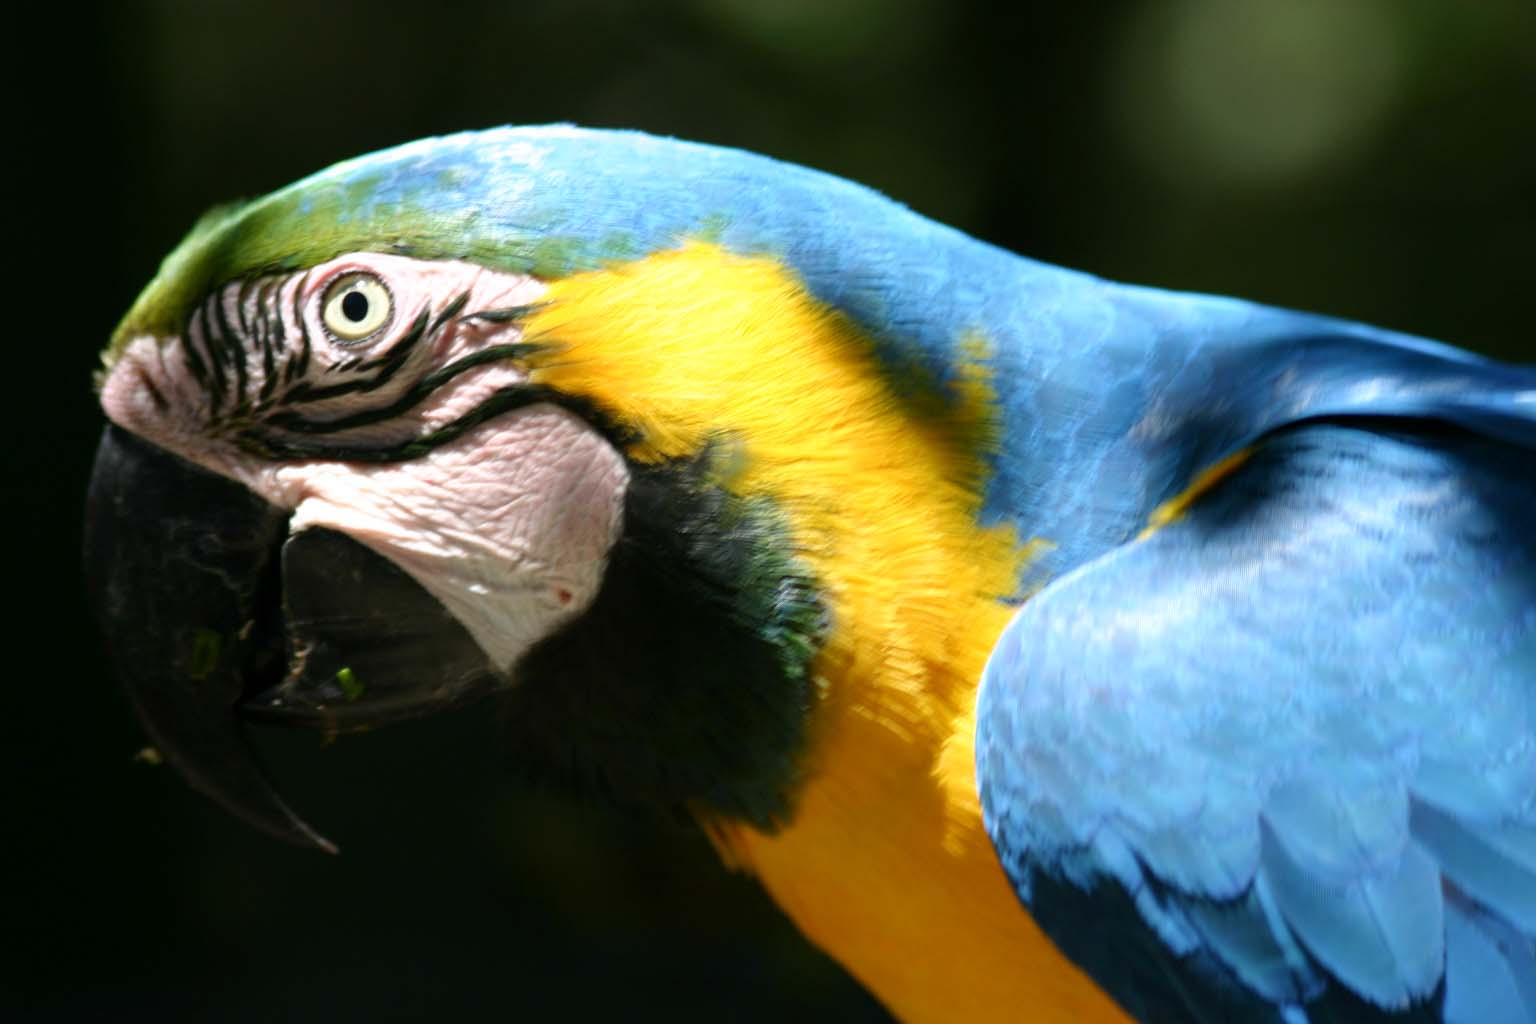 File:Blue and Gold Macaw head.jpg - Wikimedia Commons